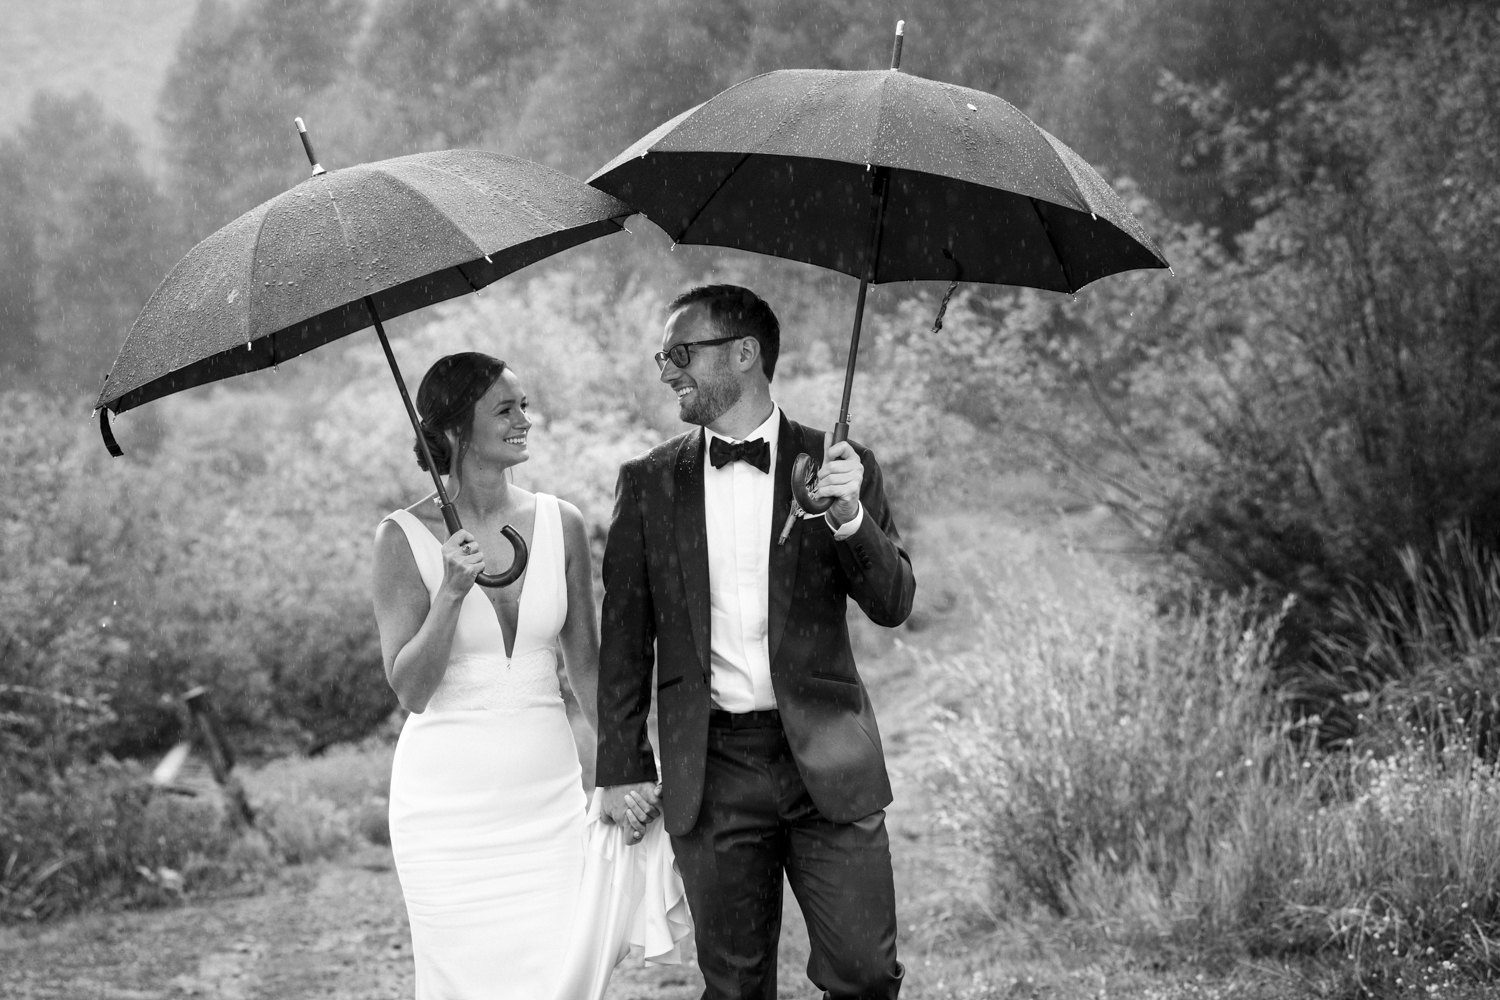 trailcreek_rainy_wedding-023.jpg